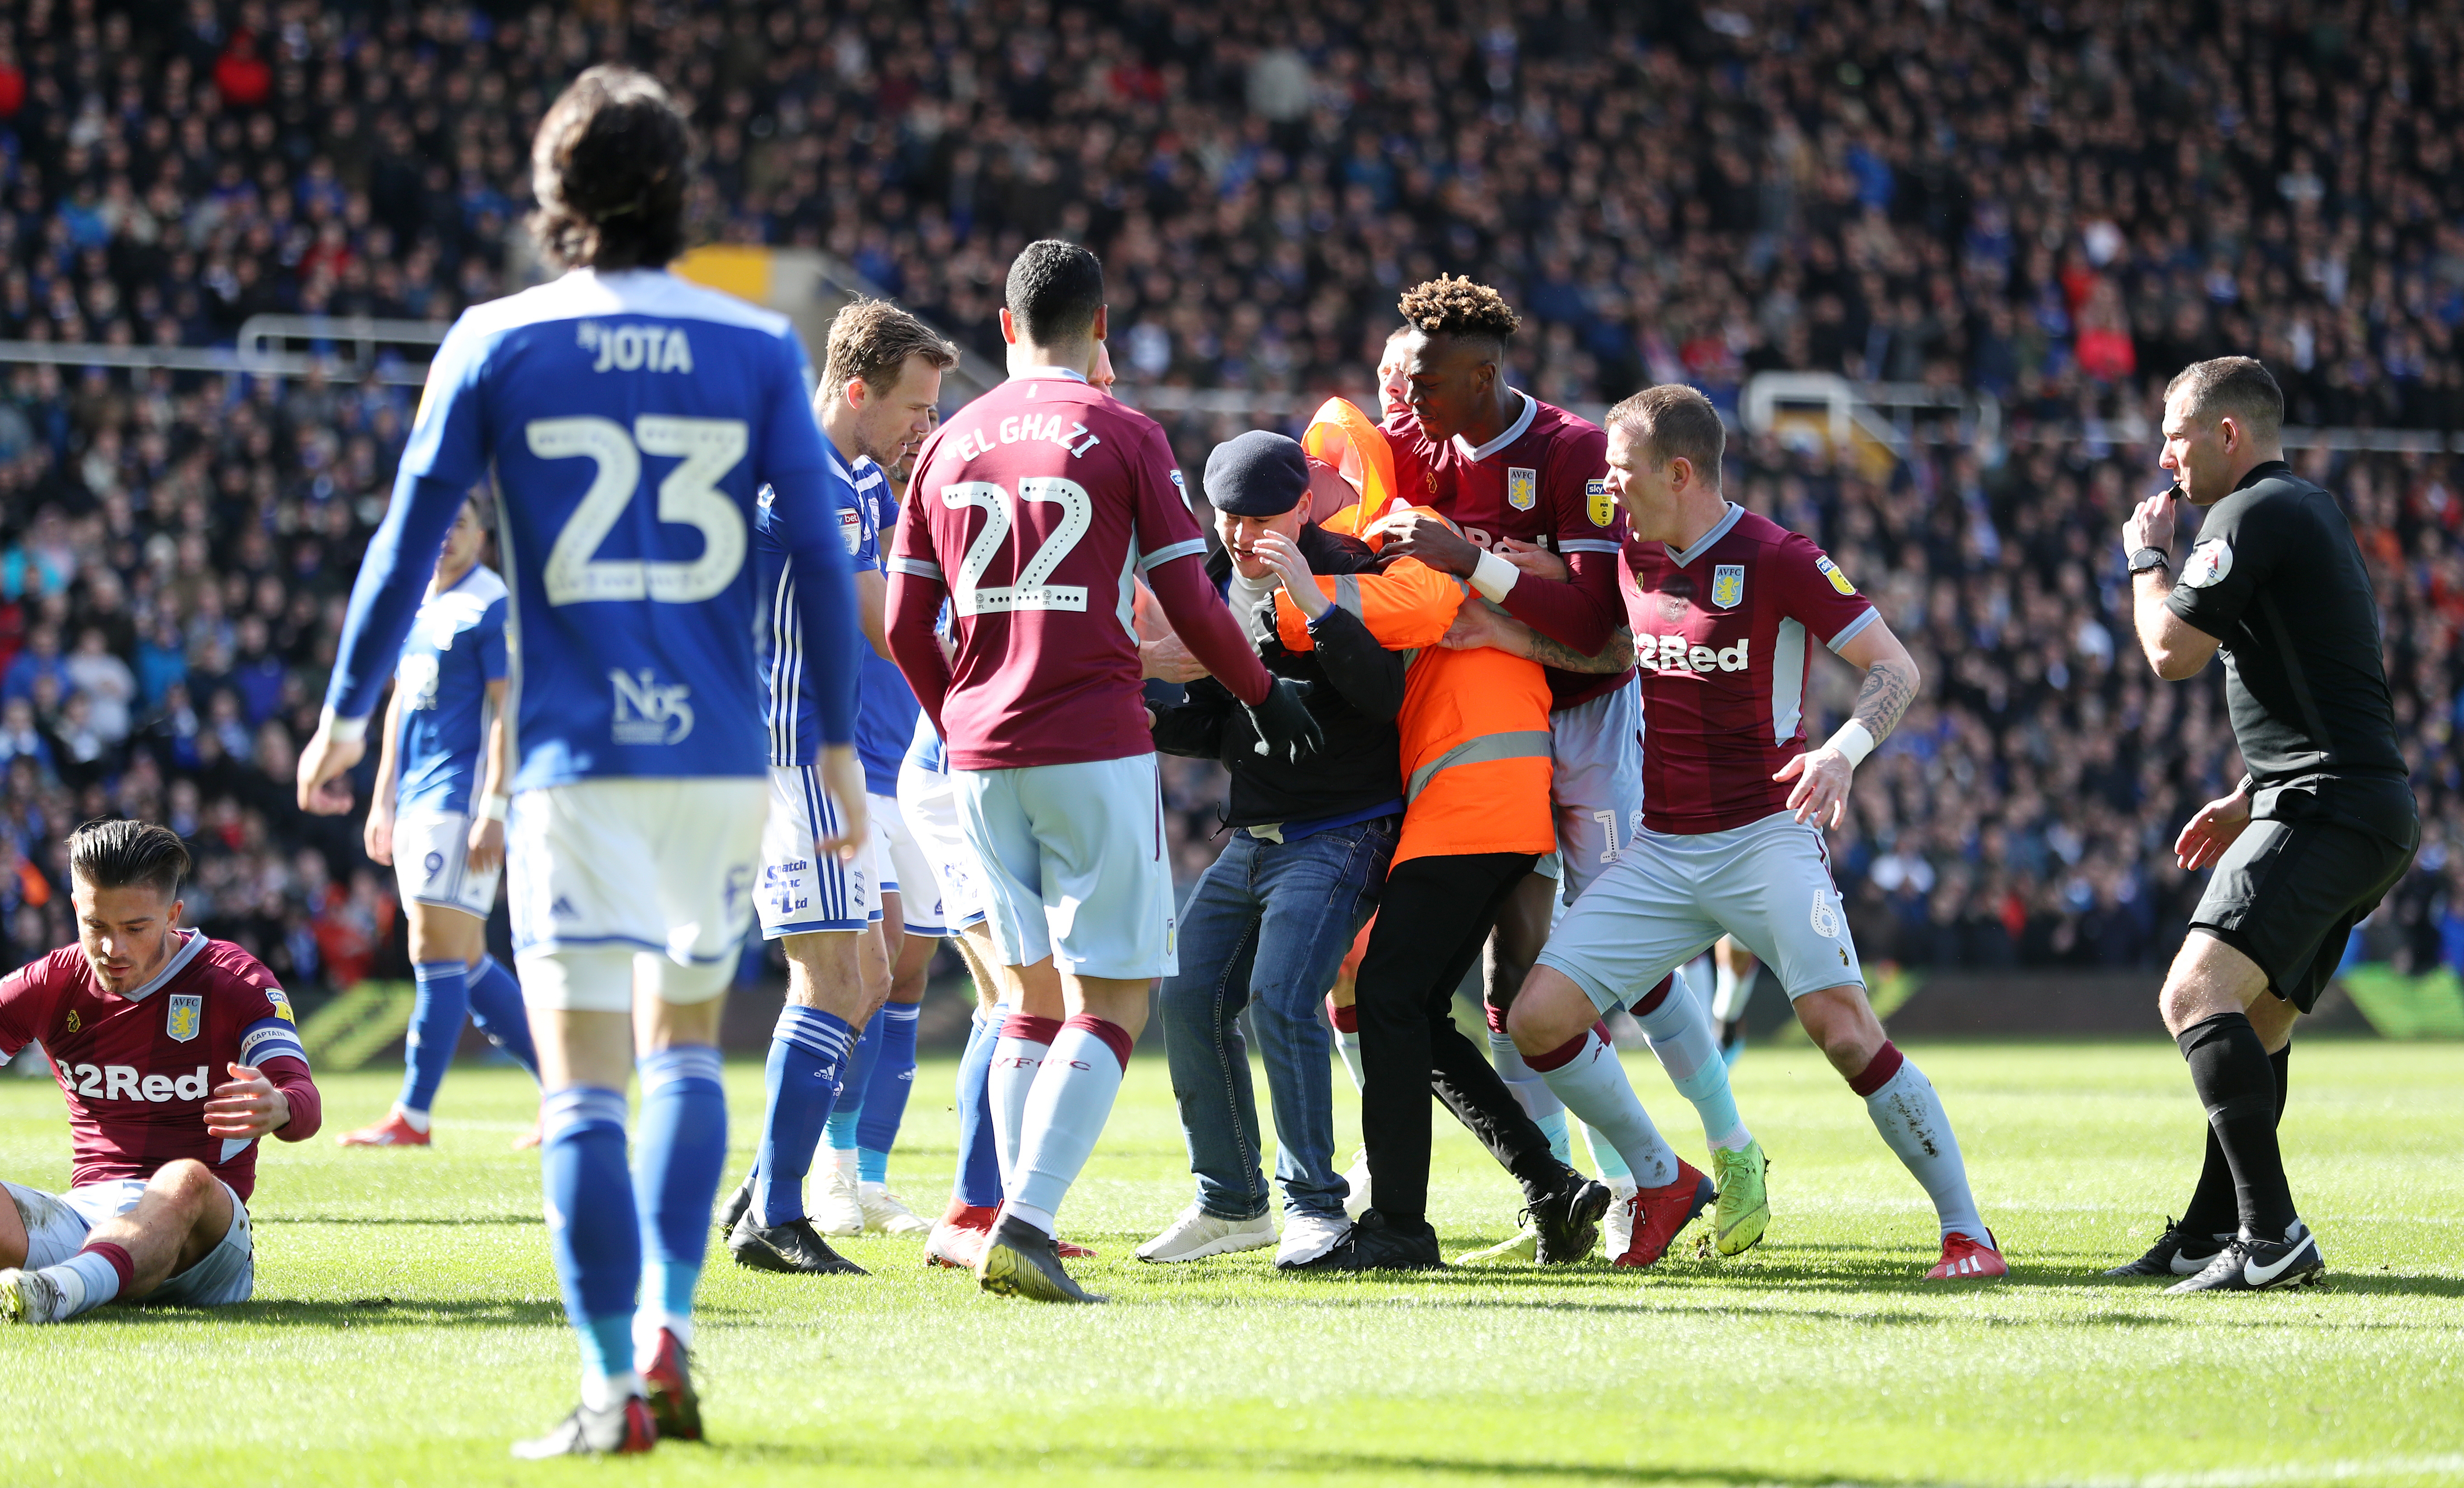 A Birmingham fan recently attacked Jack Grealish during the game against Aston Villa. Image: PA Images